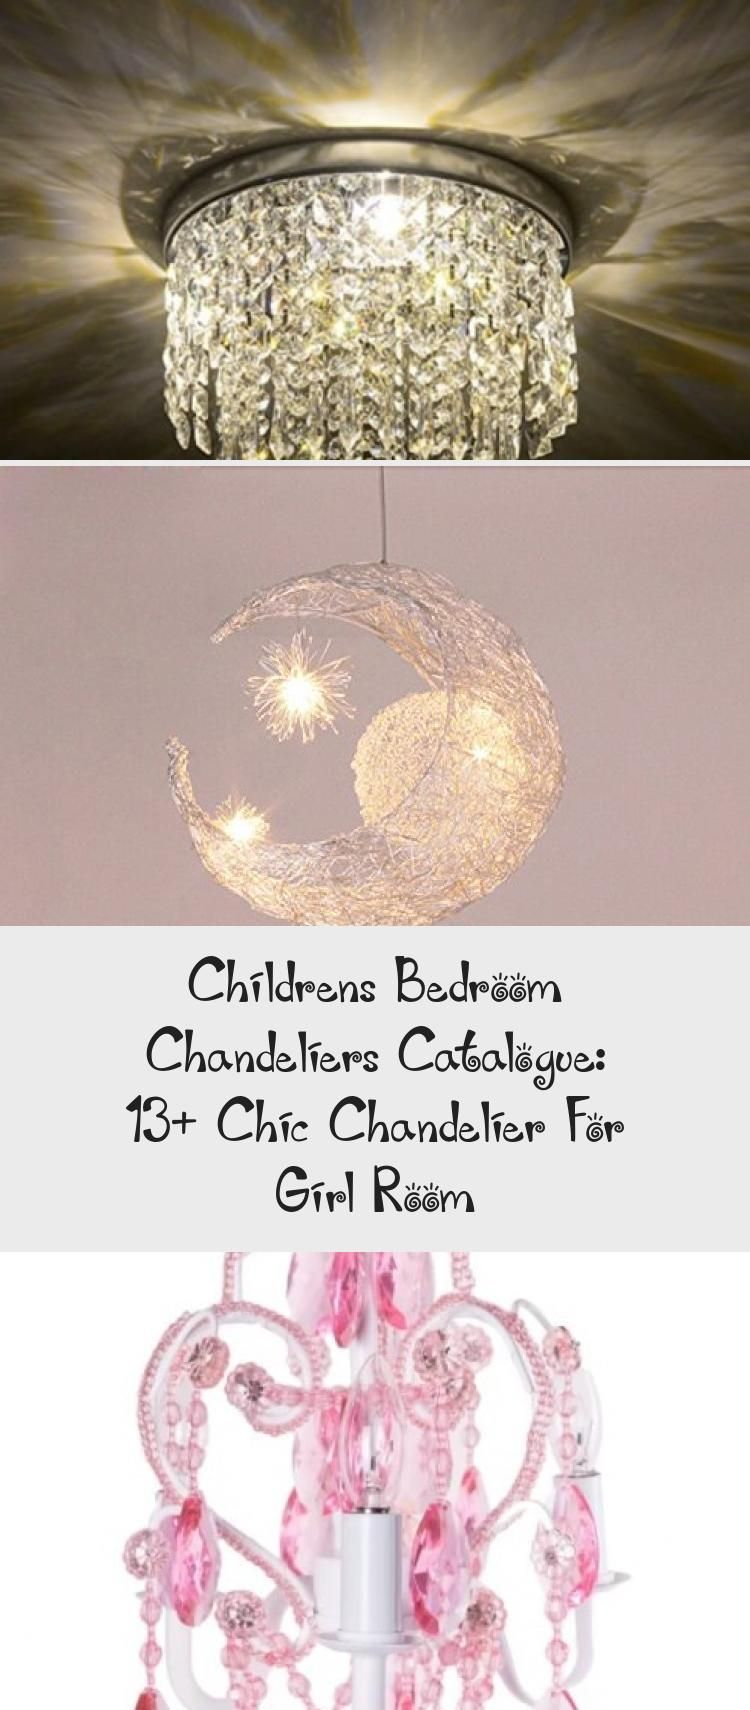 Childrens Bedroom Chandeliers Catalogue 13 Chic Chandelier For